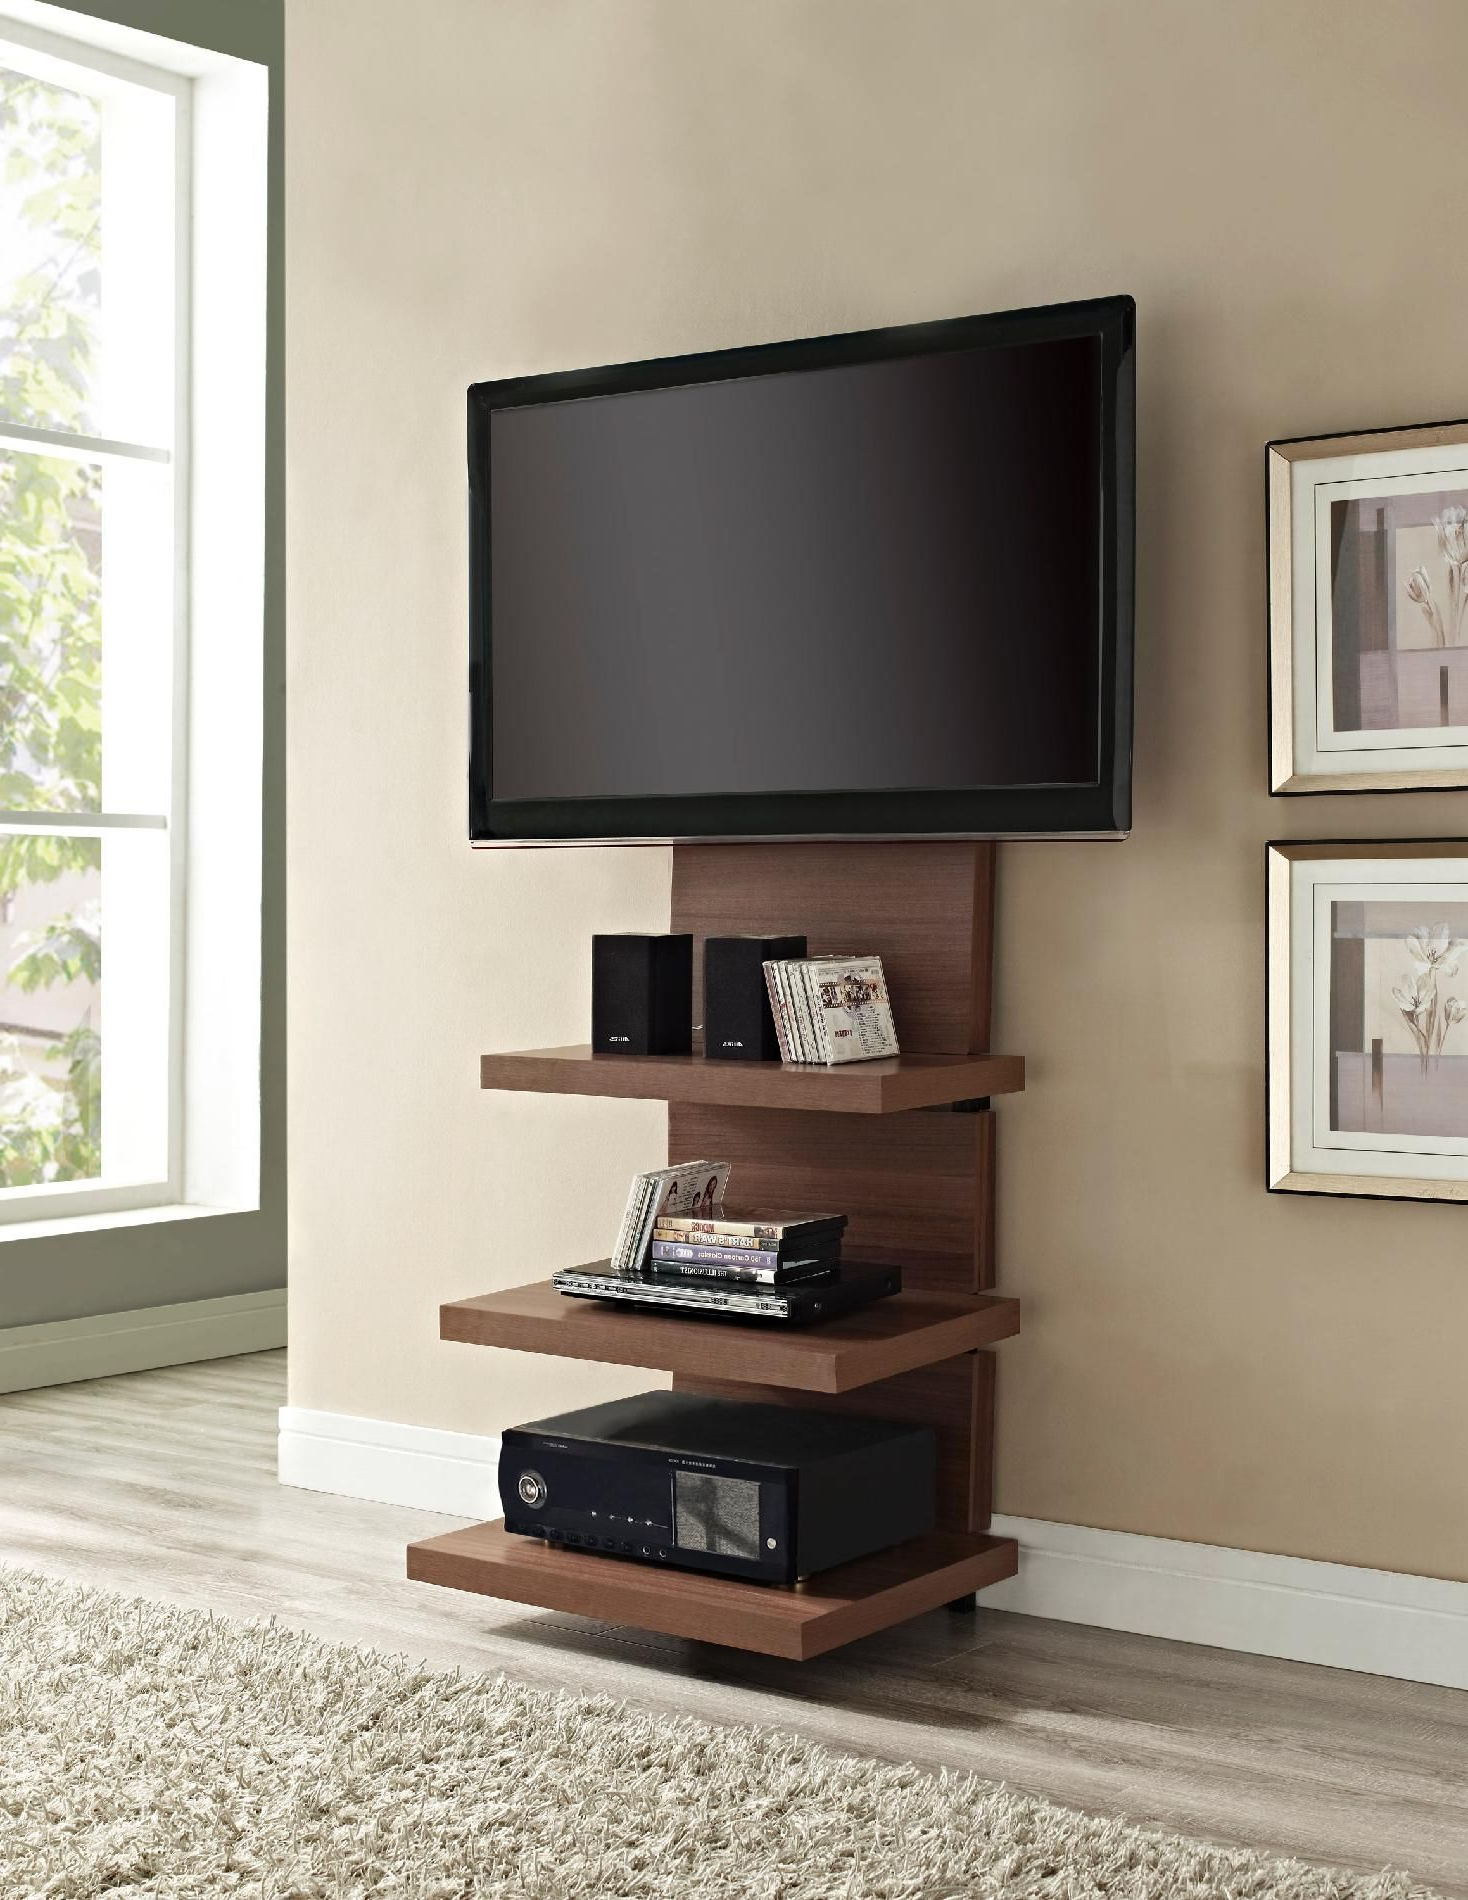 Modern Wall Mount Tv Stands In Fashionable 18 Chic And Modern Tv Wall Mount Ideas For Living Room (View 3 of 20)